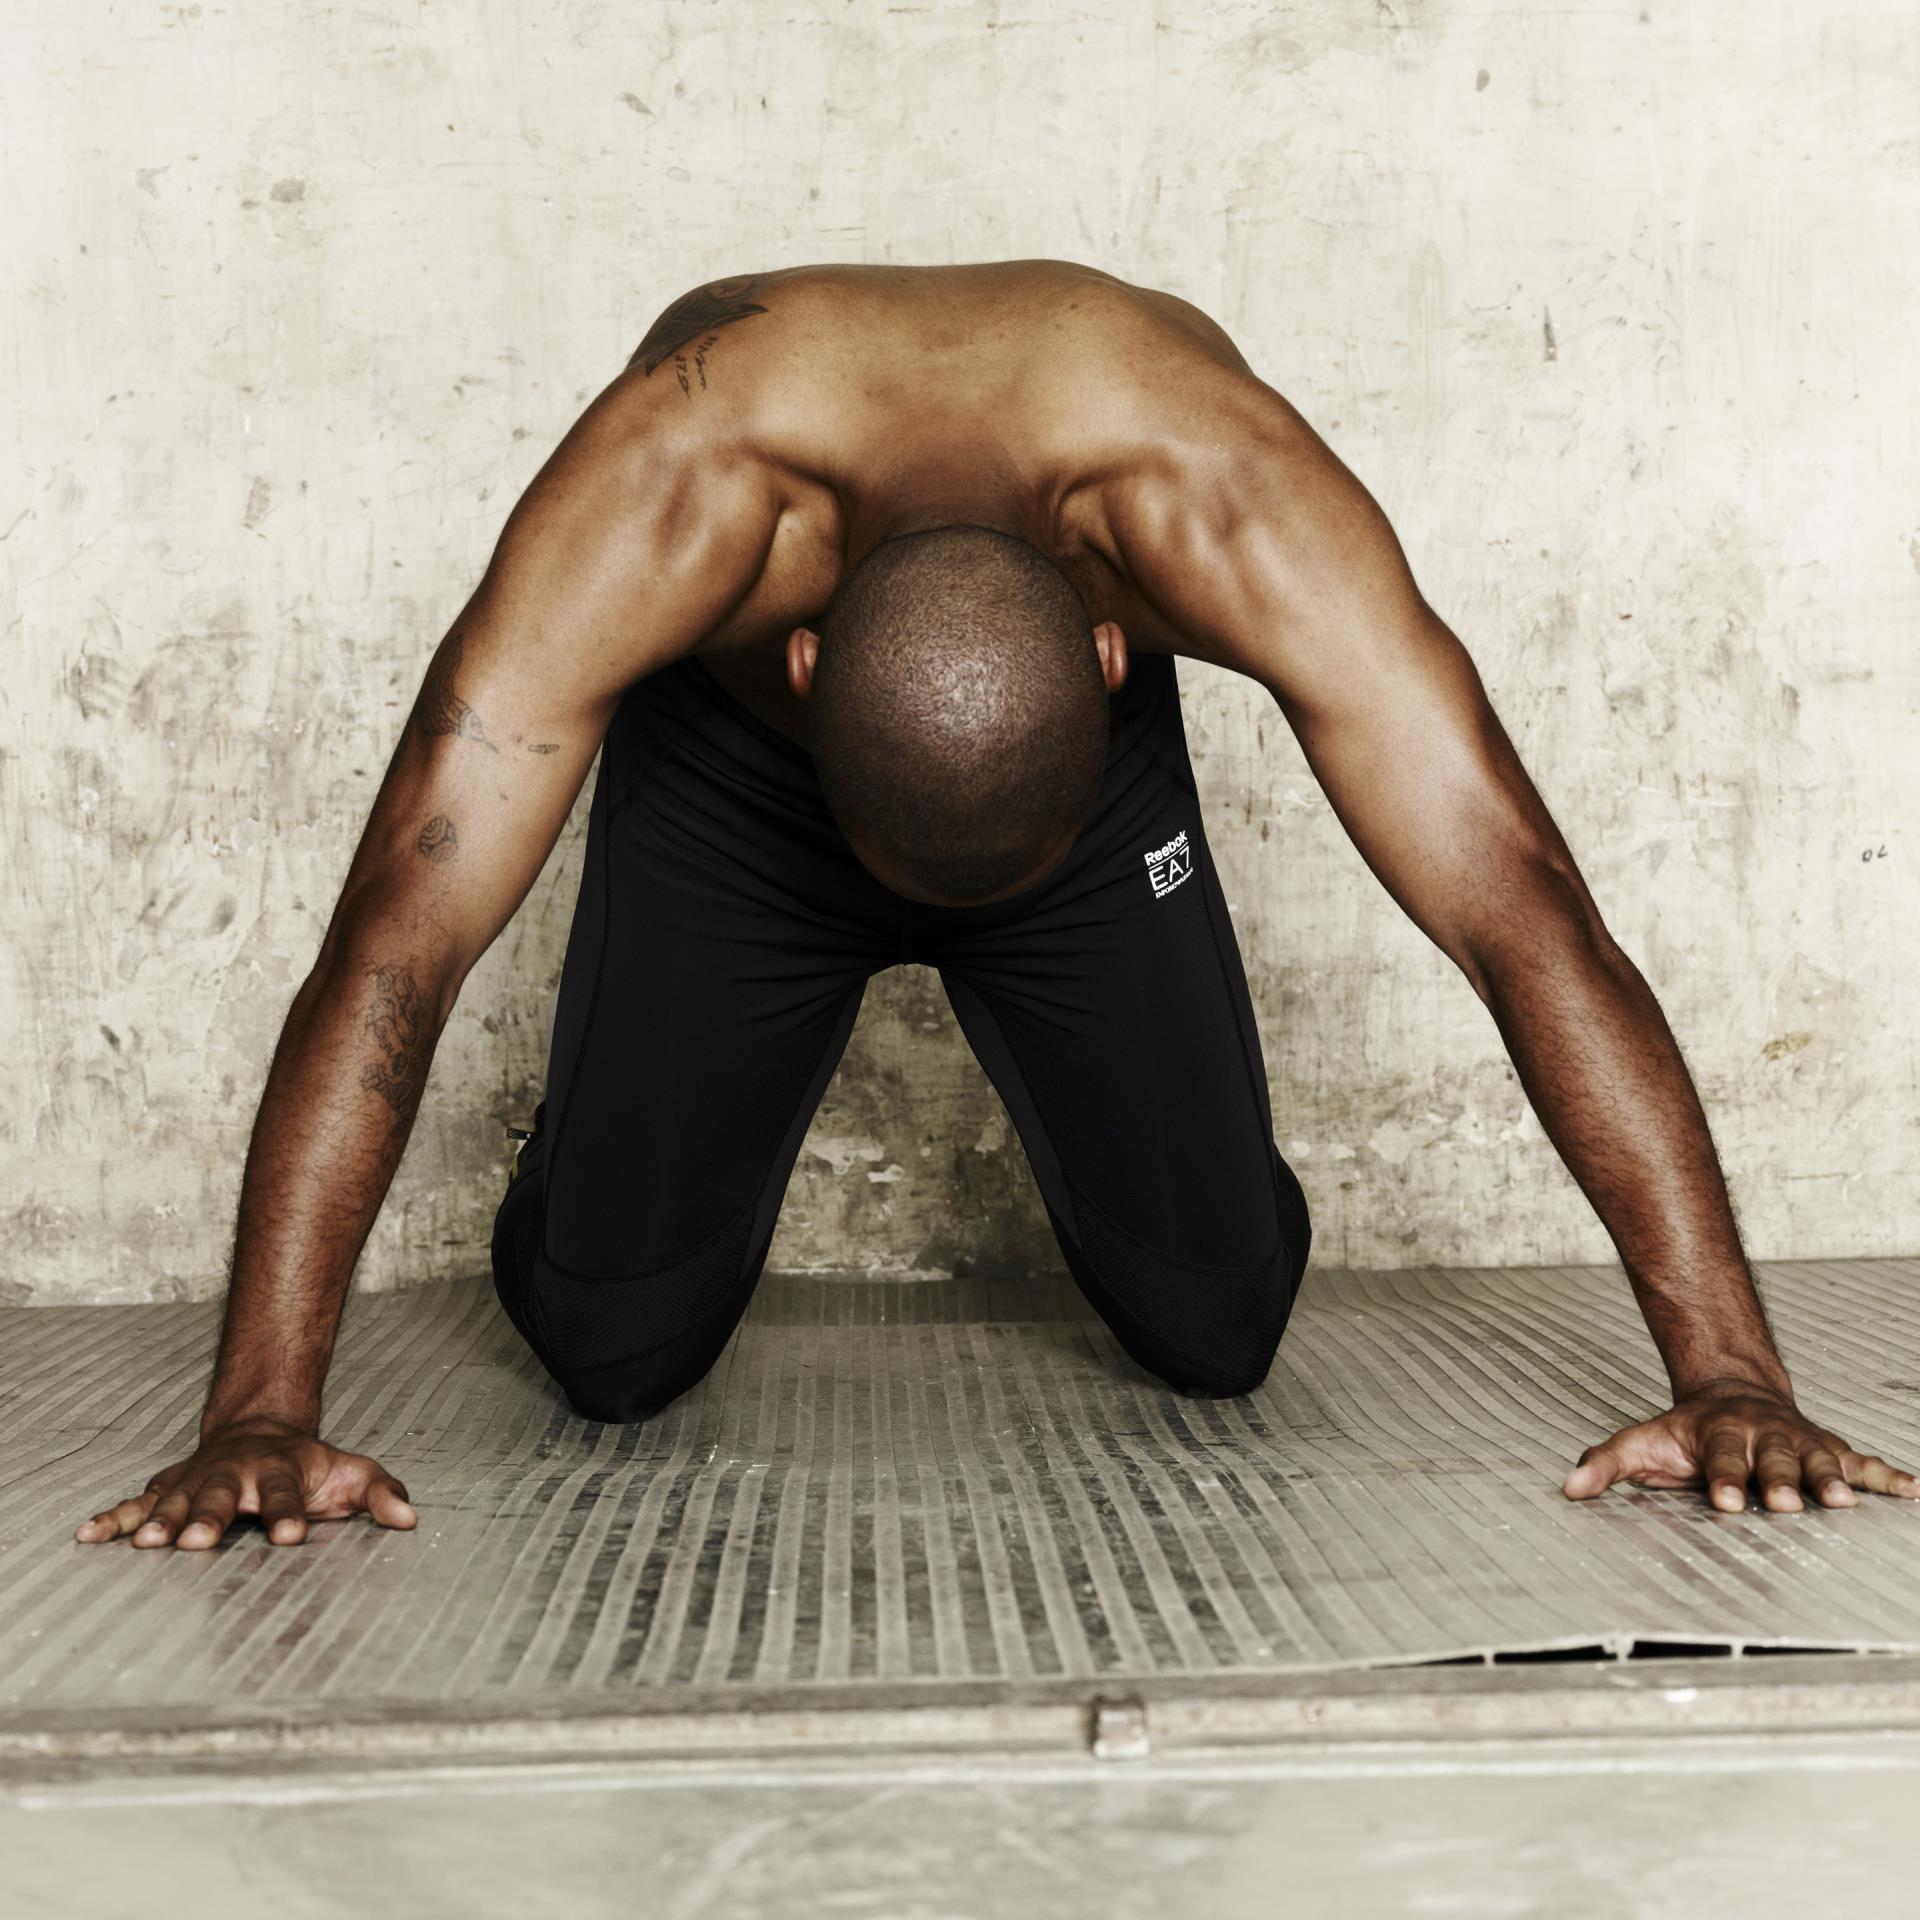 15-minute workout: Jacobs Ladder - Furthermore